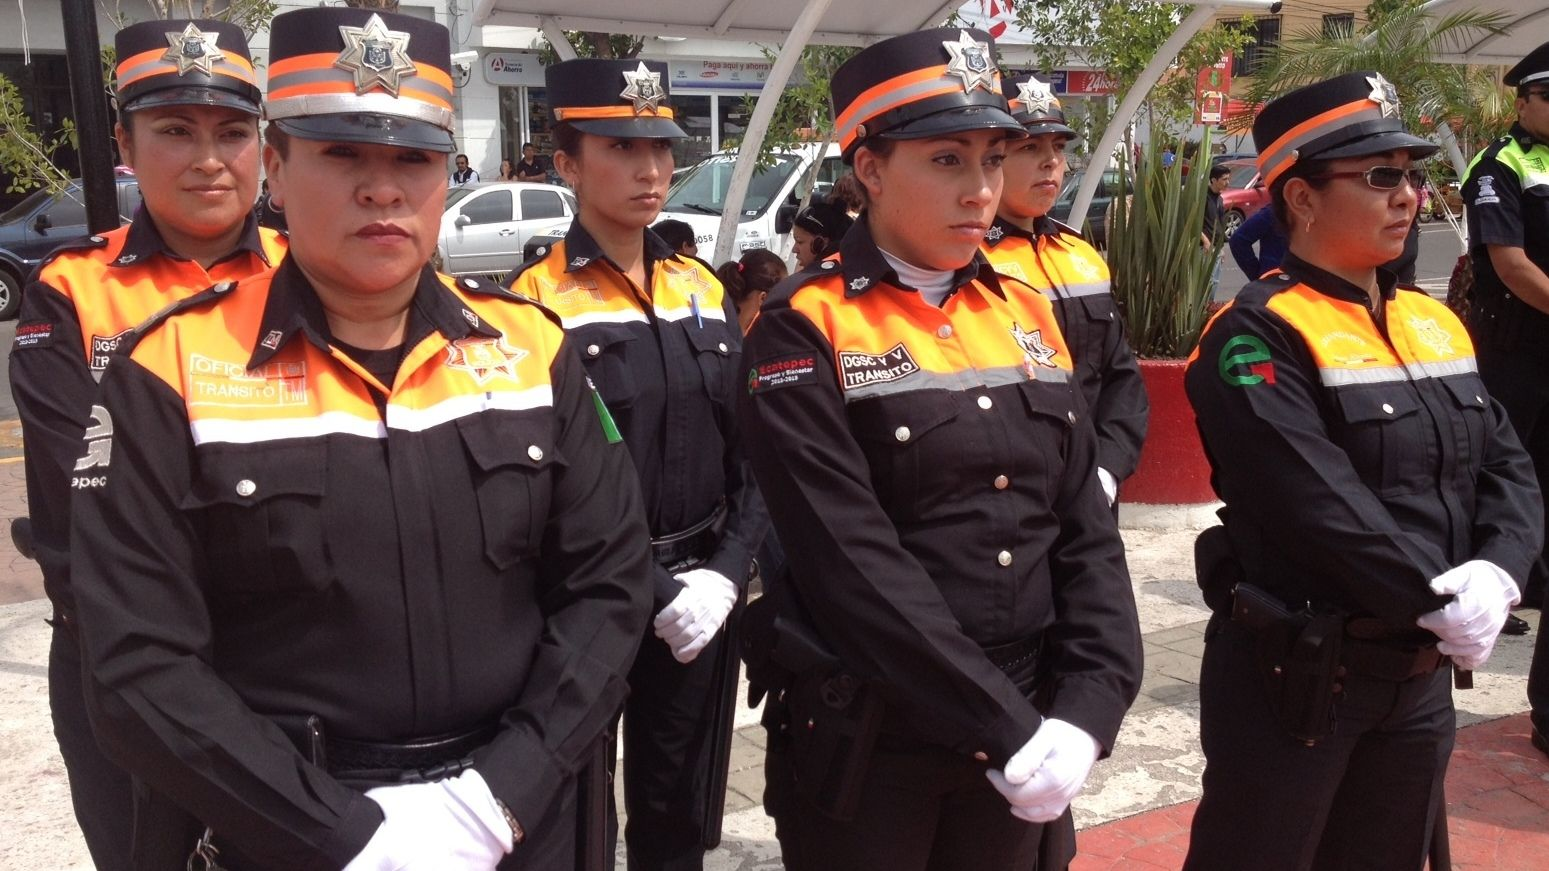 Mexican State's Anti-Corruption Plan: Hire Female Traffic Cops